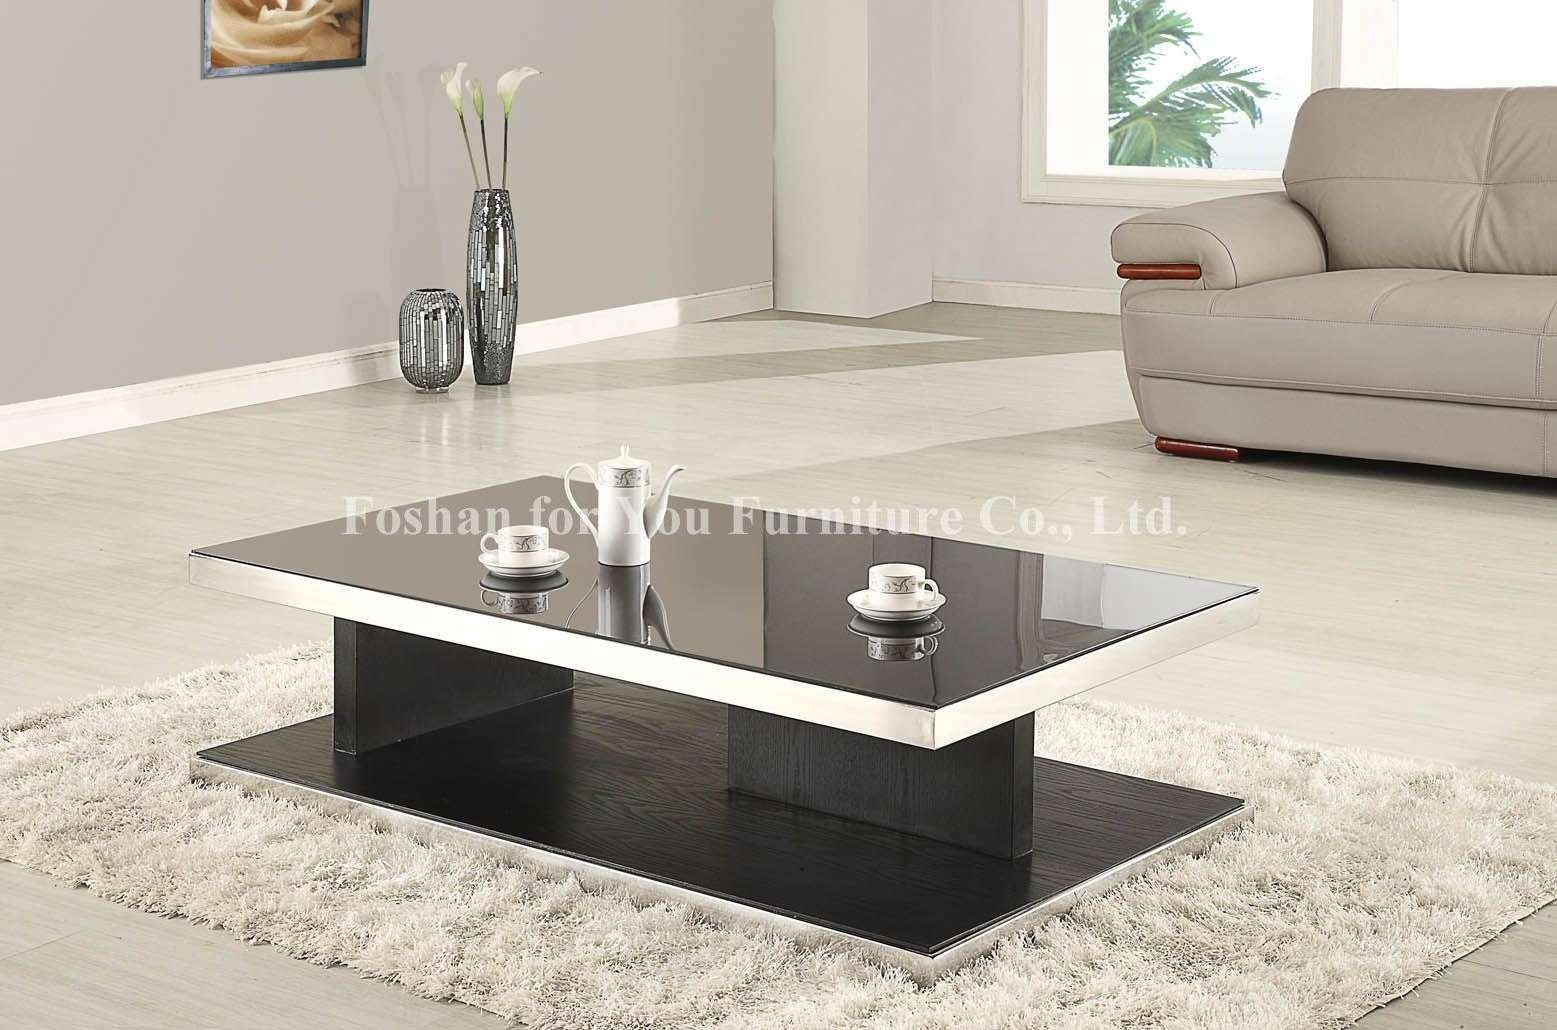 Favorite Stone And Glass Coffee Tables In Living Room Coffee Table Modern White Stone Sleek Style Vases Red (View 17 of 20)